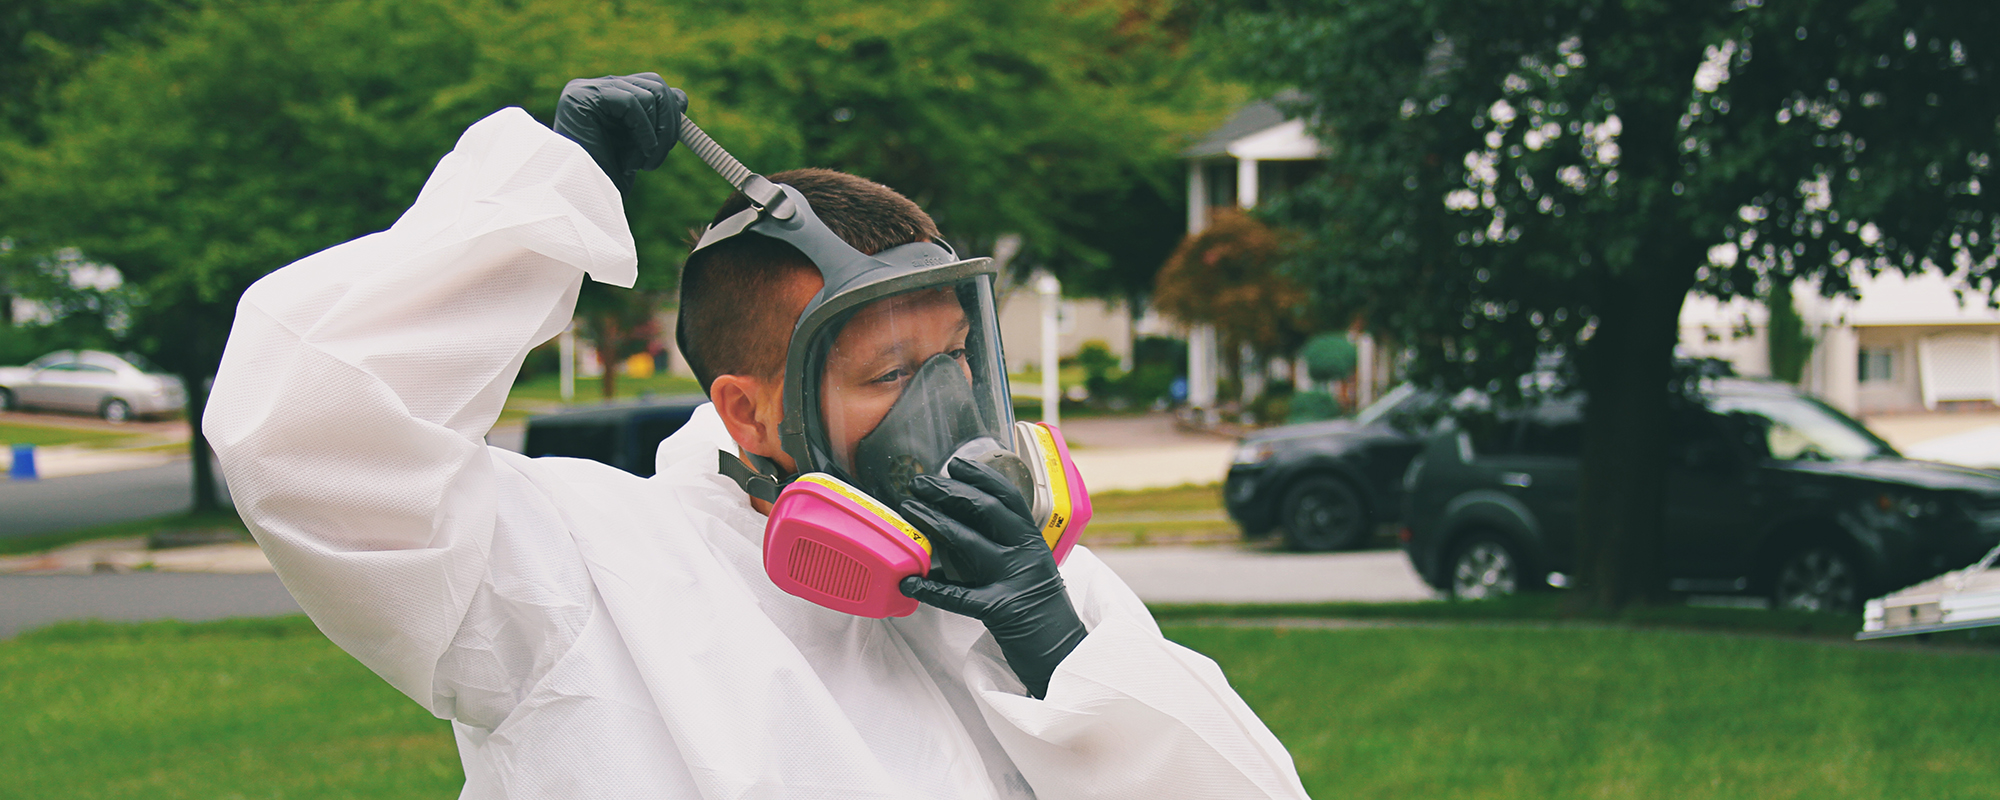 mold-remediation-bucks-county-pa